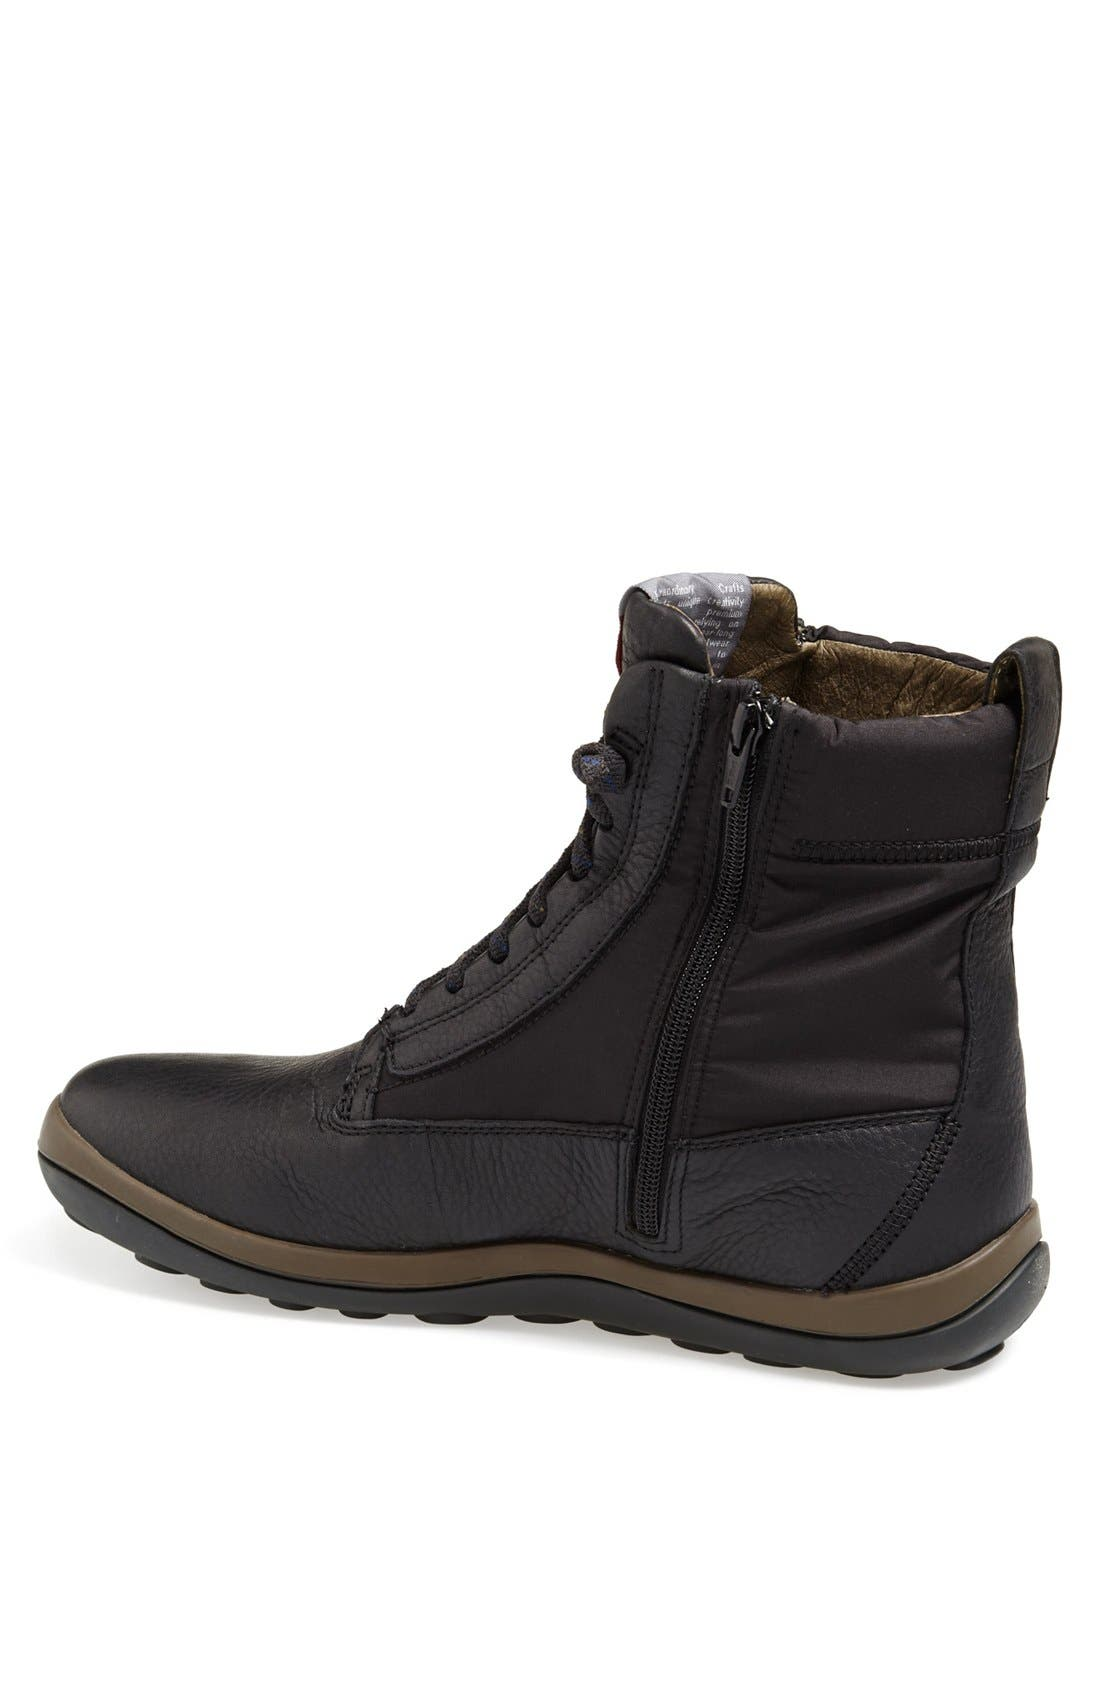 Alternate Image 2  - Camper 'Peu Pista' Gore-Tex® Snow Boot (Men)